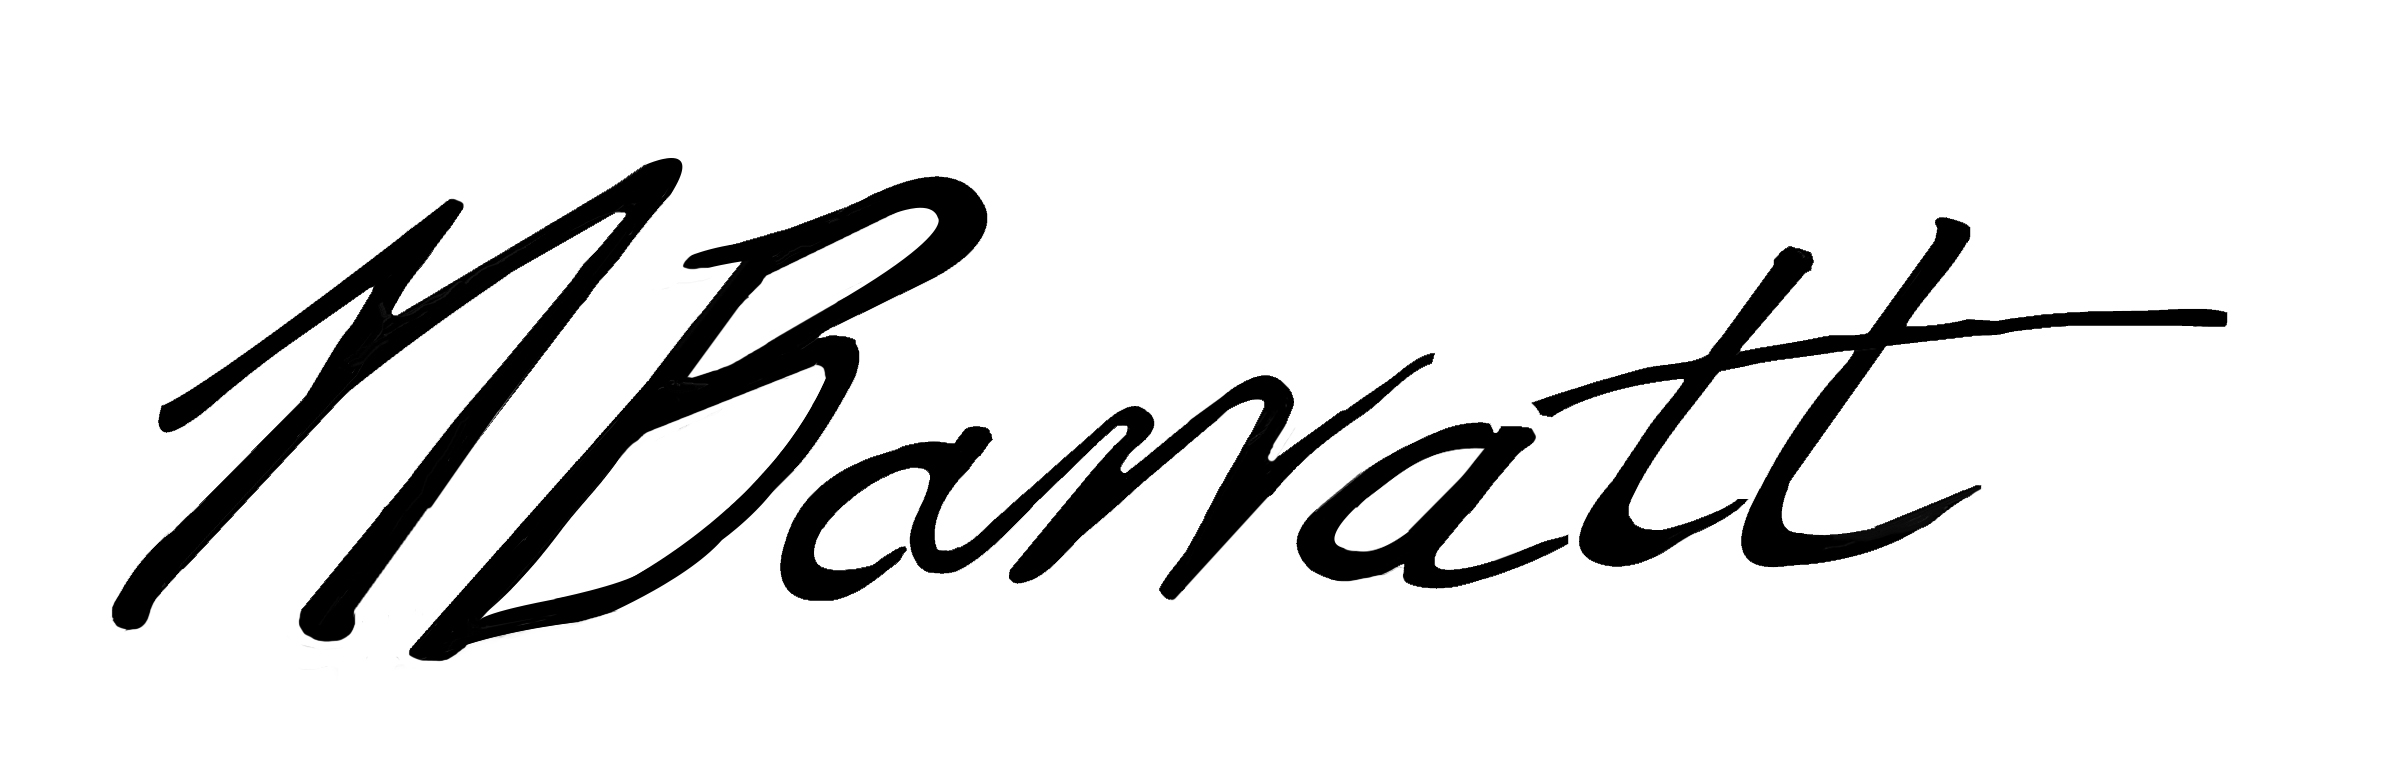 Nina Barratt Signature